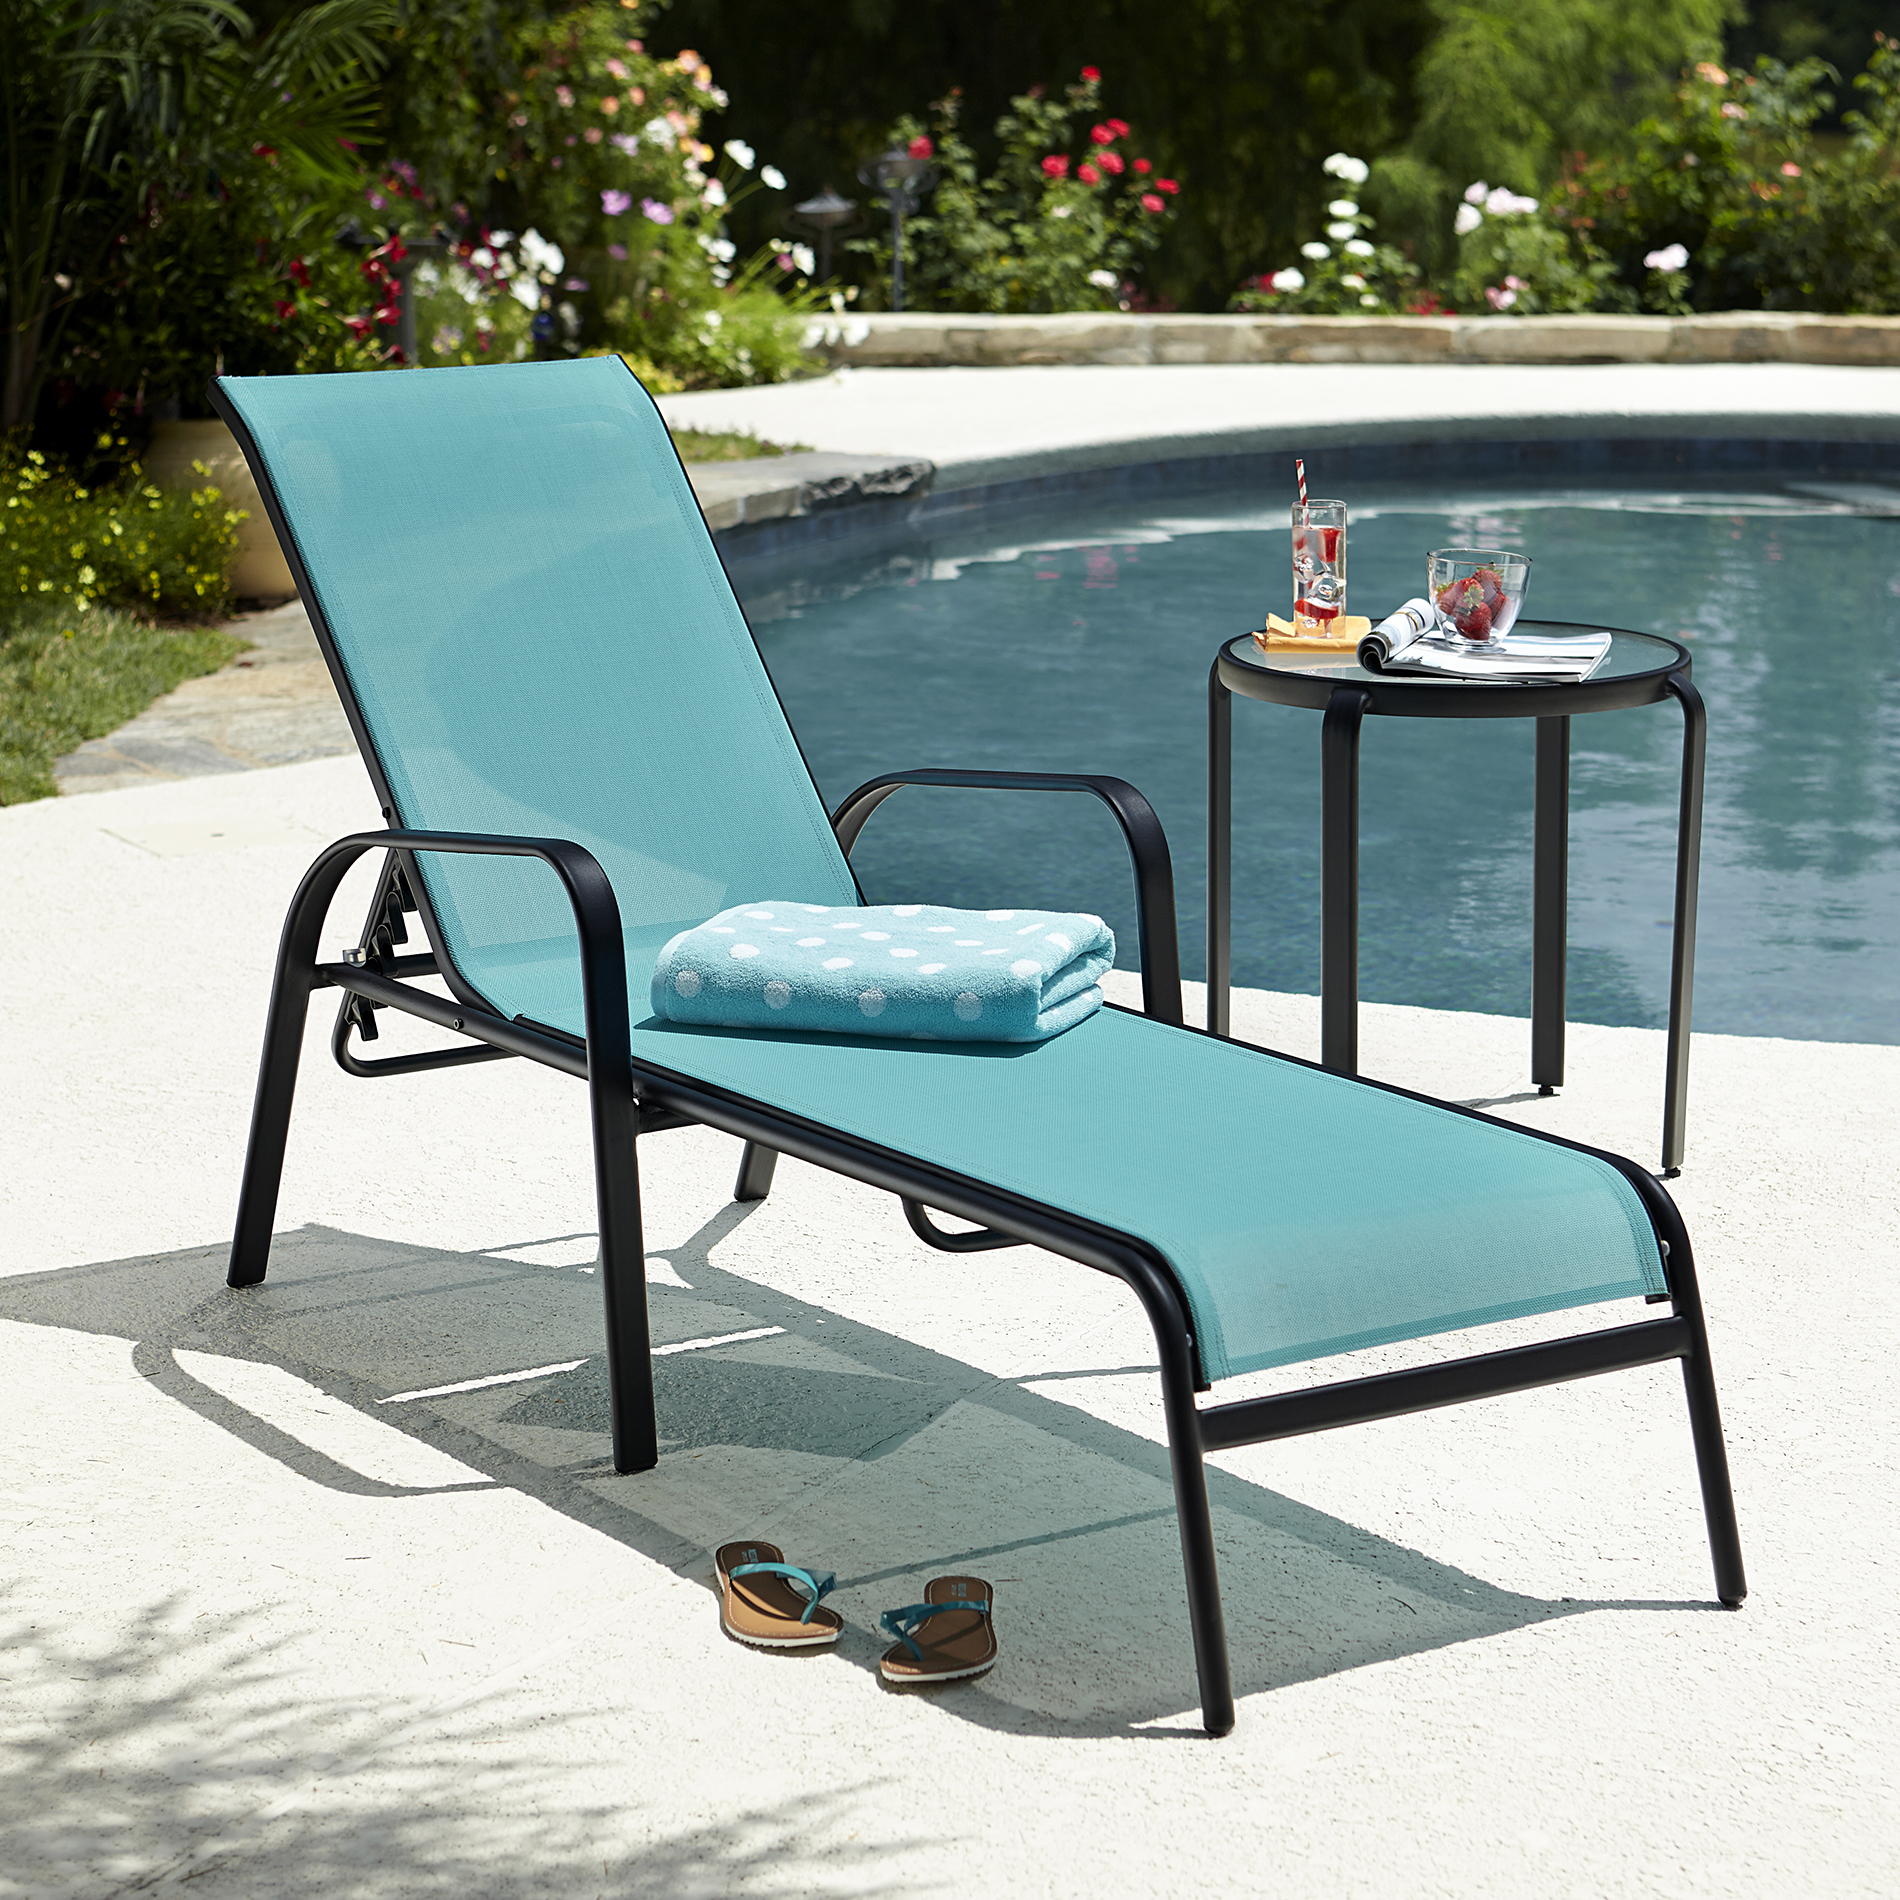 Blue Chaise Lounge Outdoor Furniture